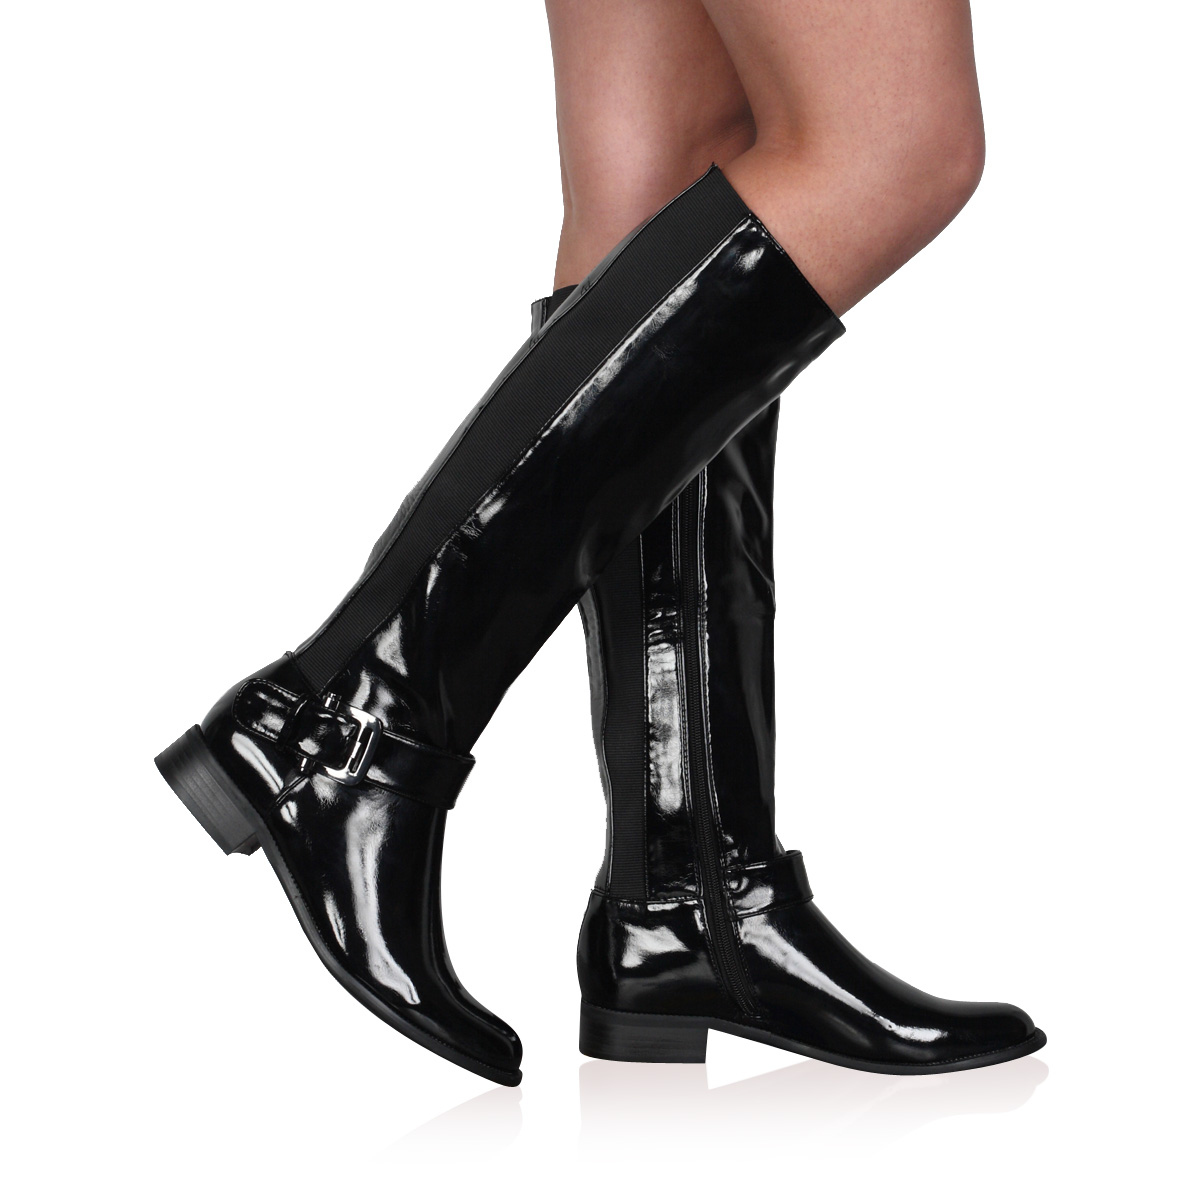 Herley Riding Boots By Guess